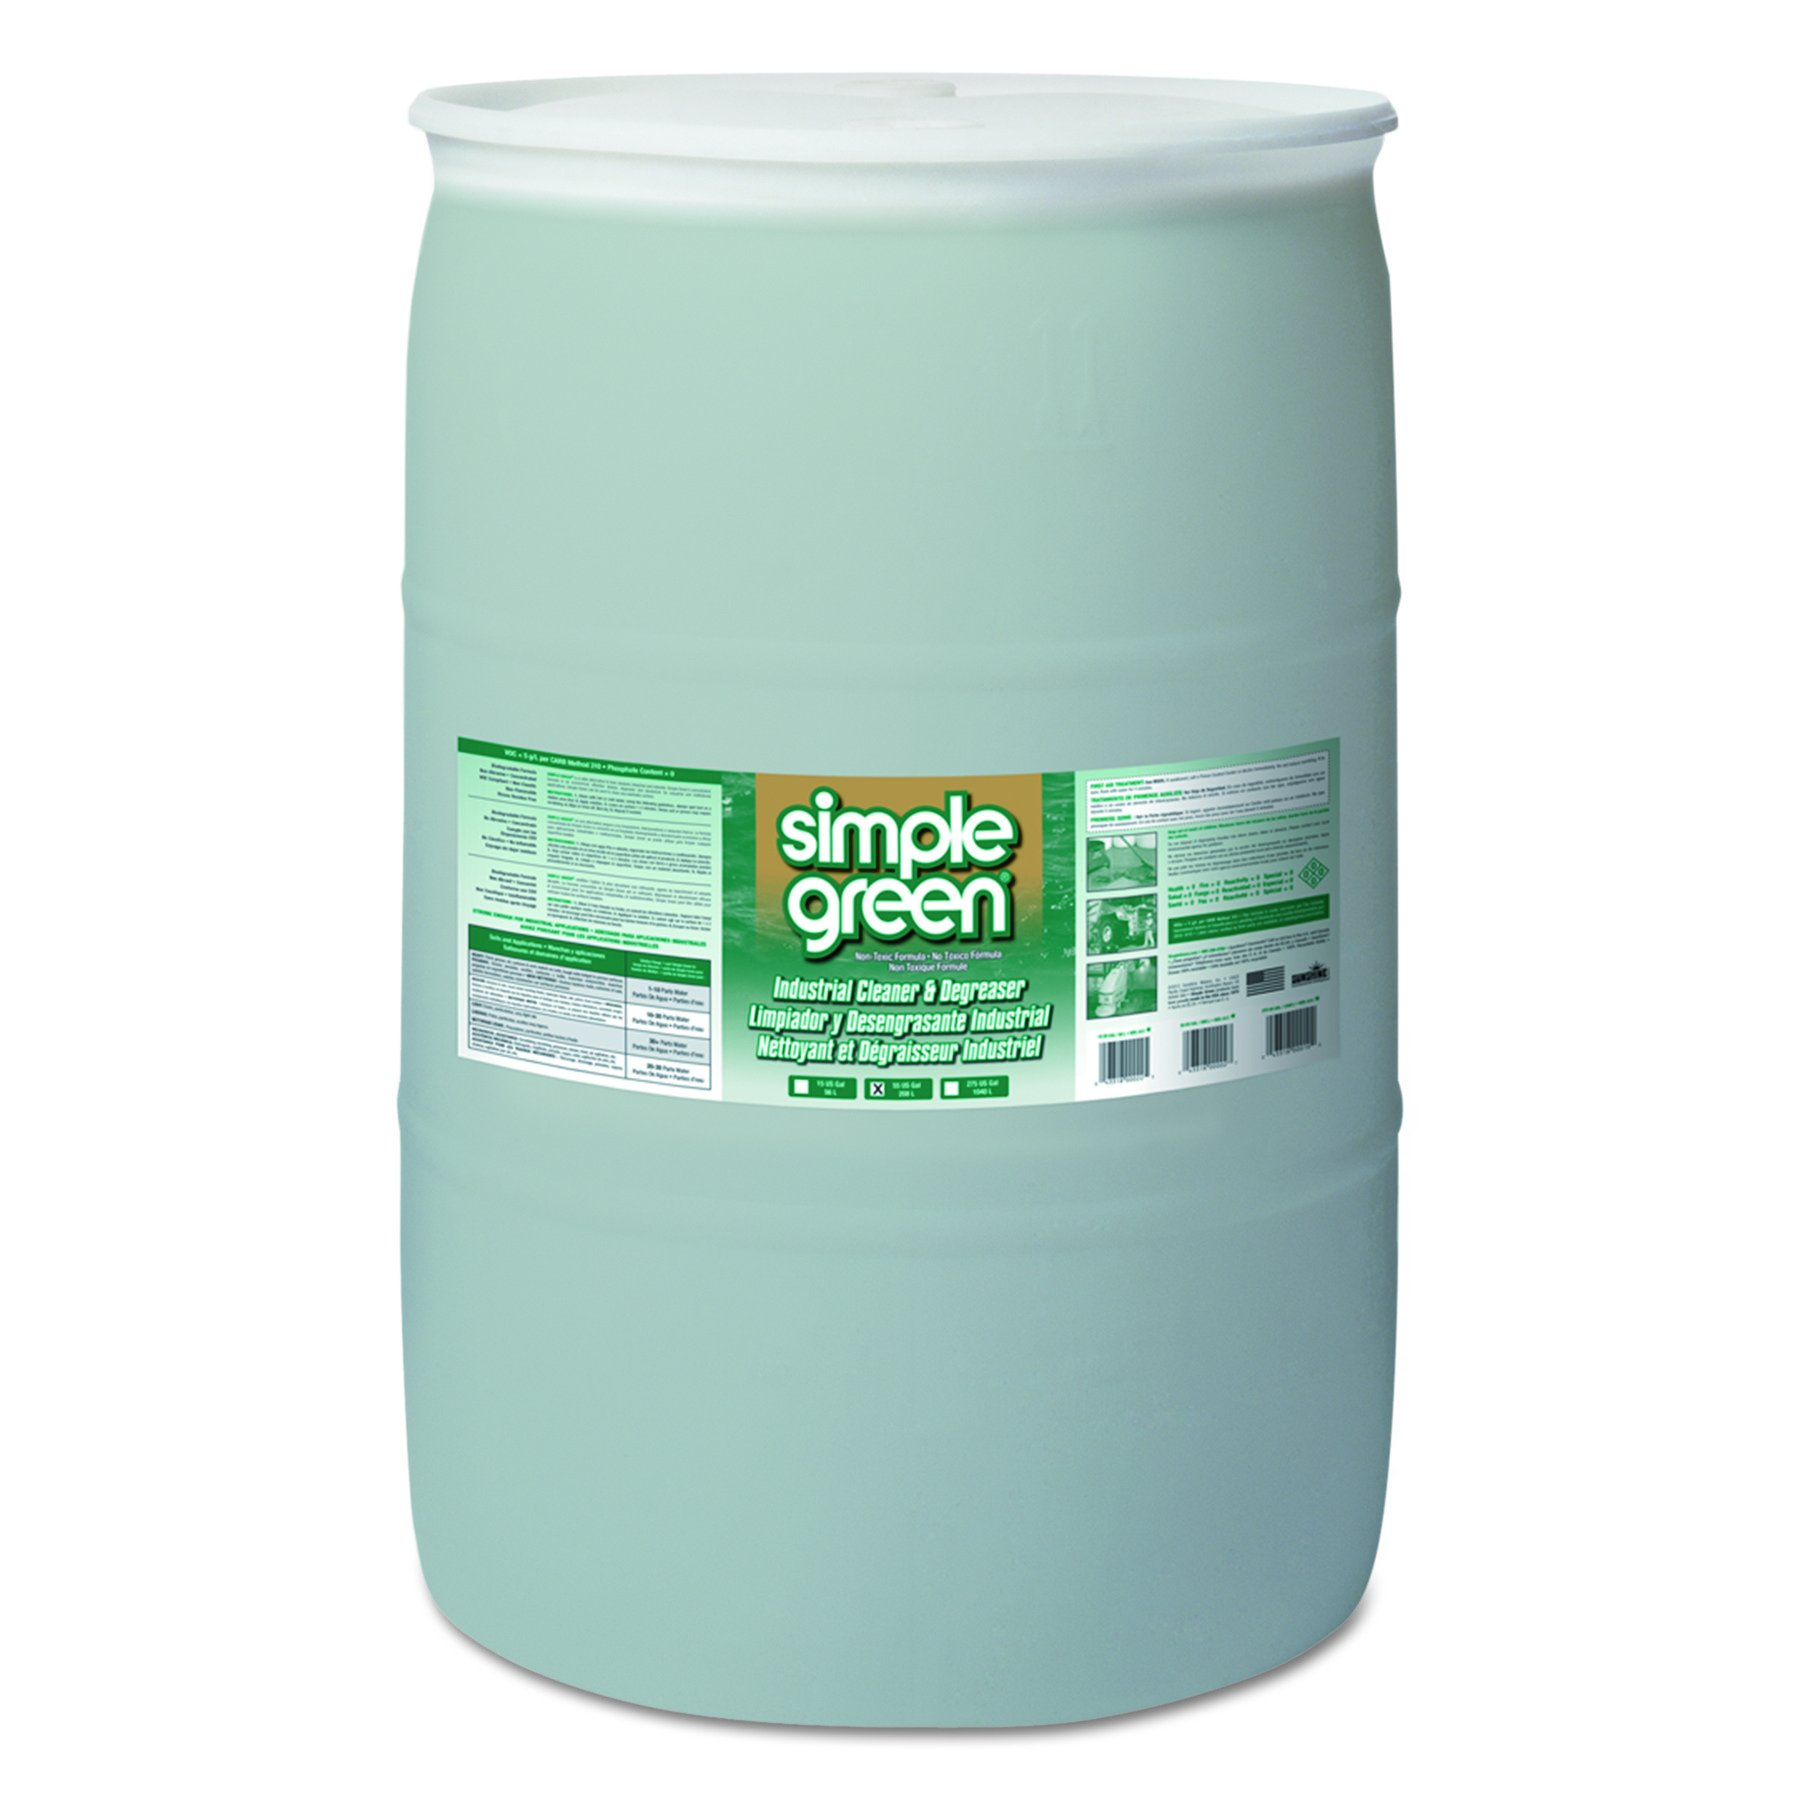 Simple Green 13008 Industrial Cleaner & Degreaser, Concentrated, 55 Gallon Drum